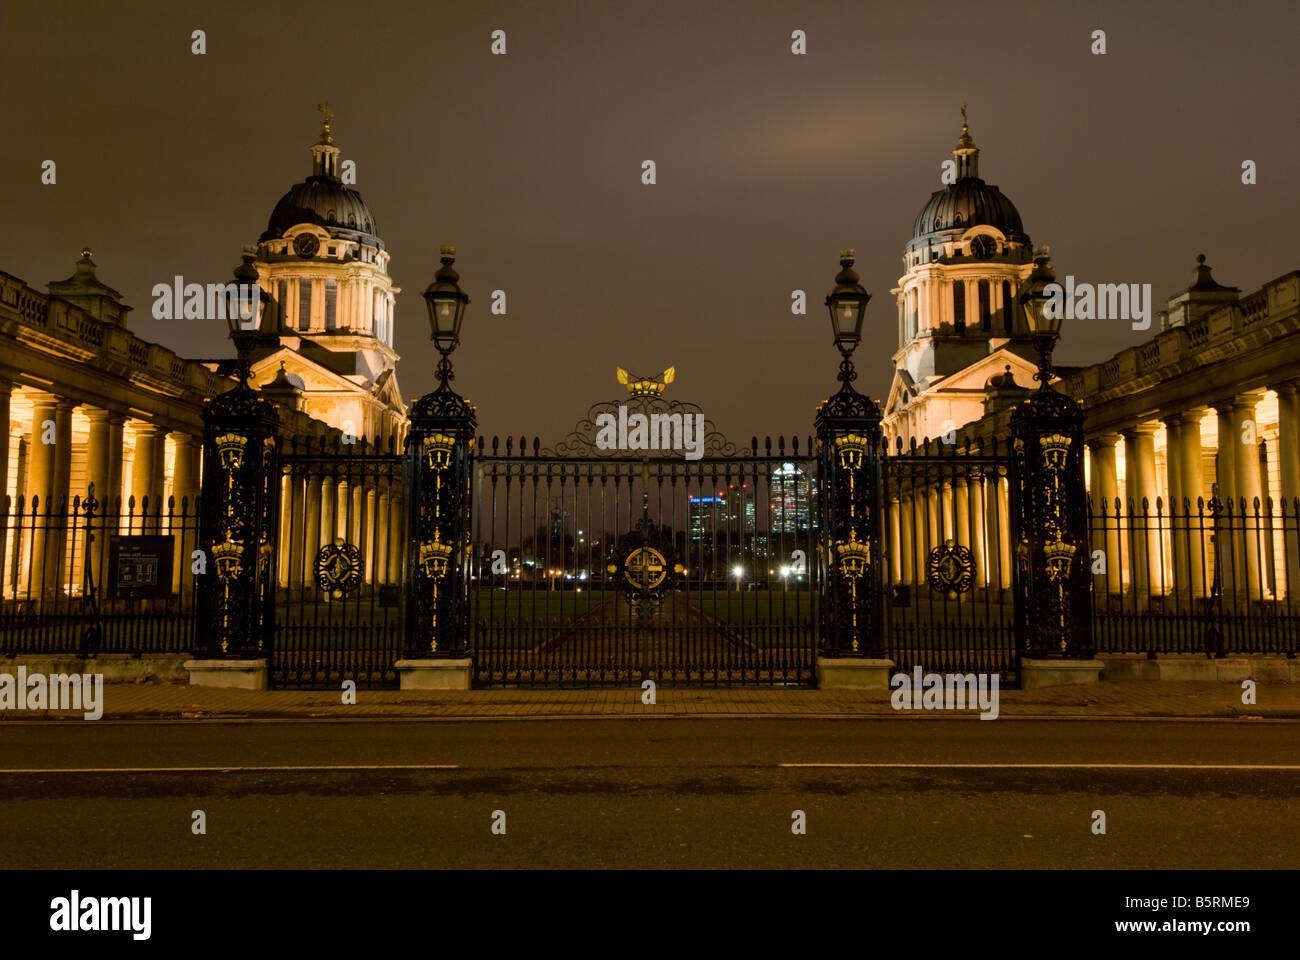 Greenwich University & The Trinity School of Music, Greenwich (Formerly Royal Naval College) at night - Stock Image